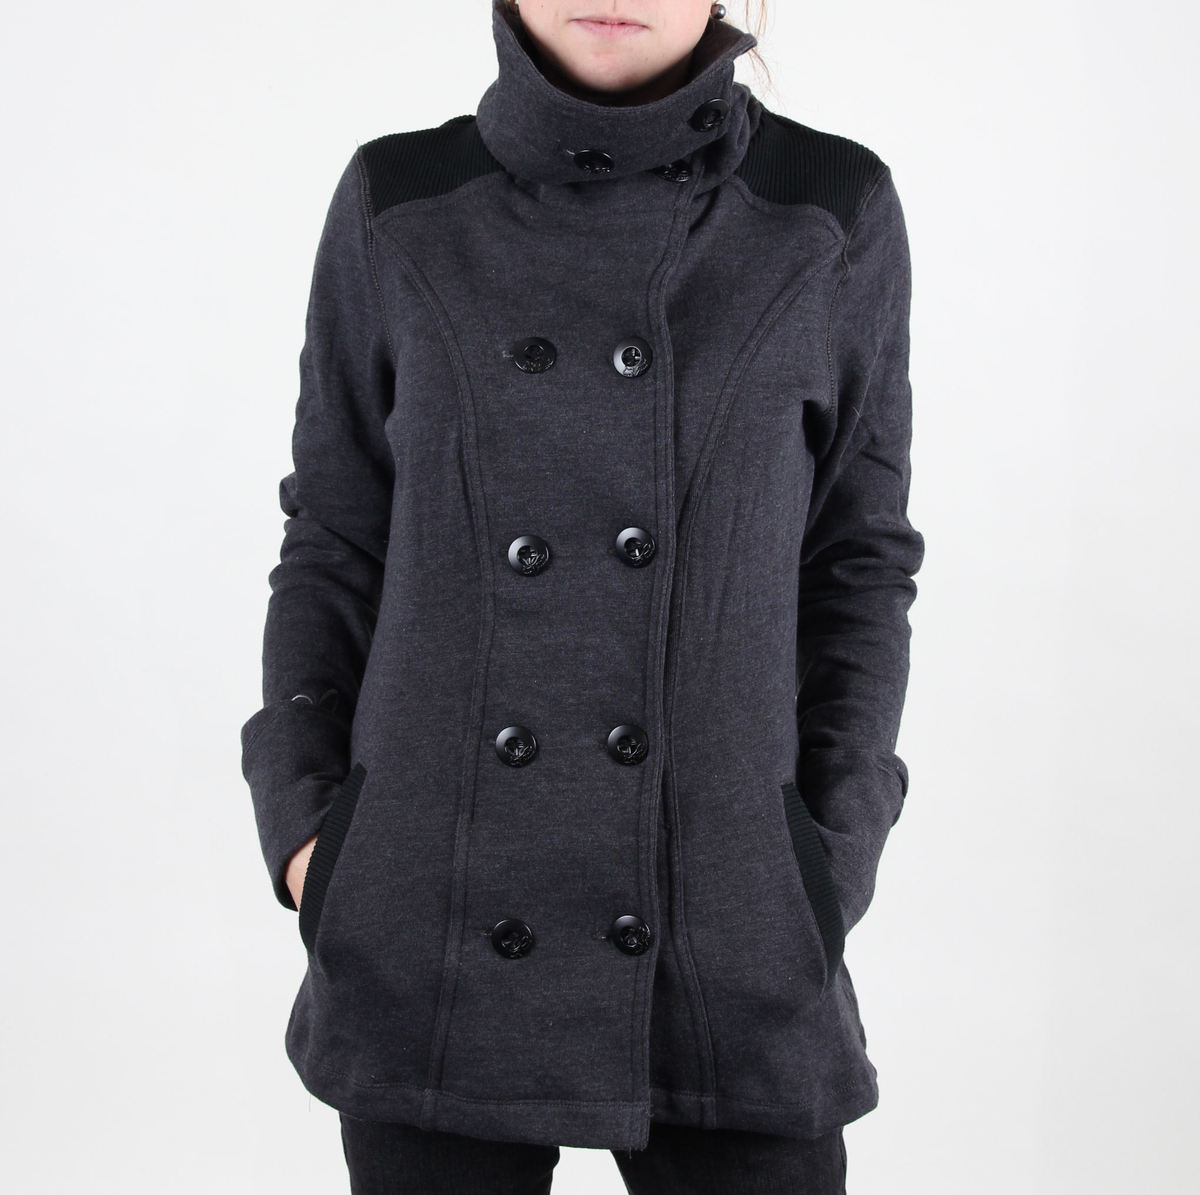 mikina bez kapuce dámské - Check It Peacoat - FOX - Charcoal Heather